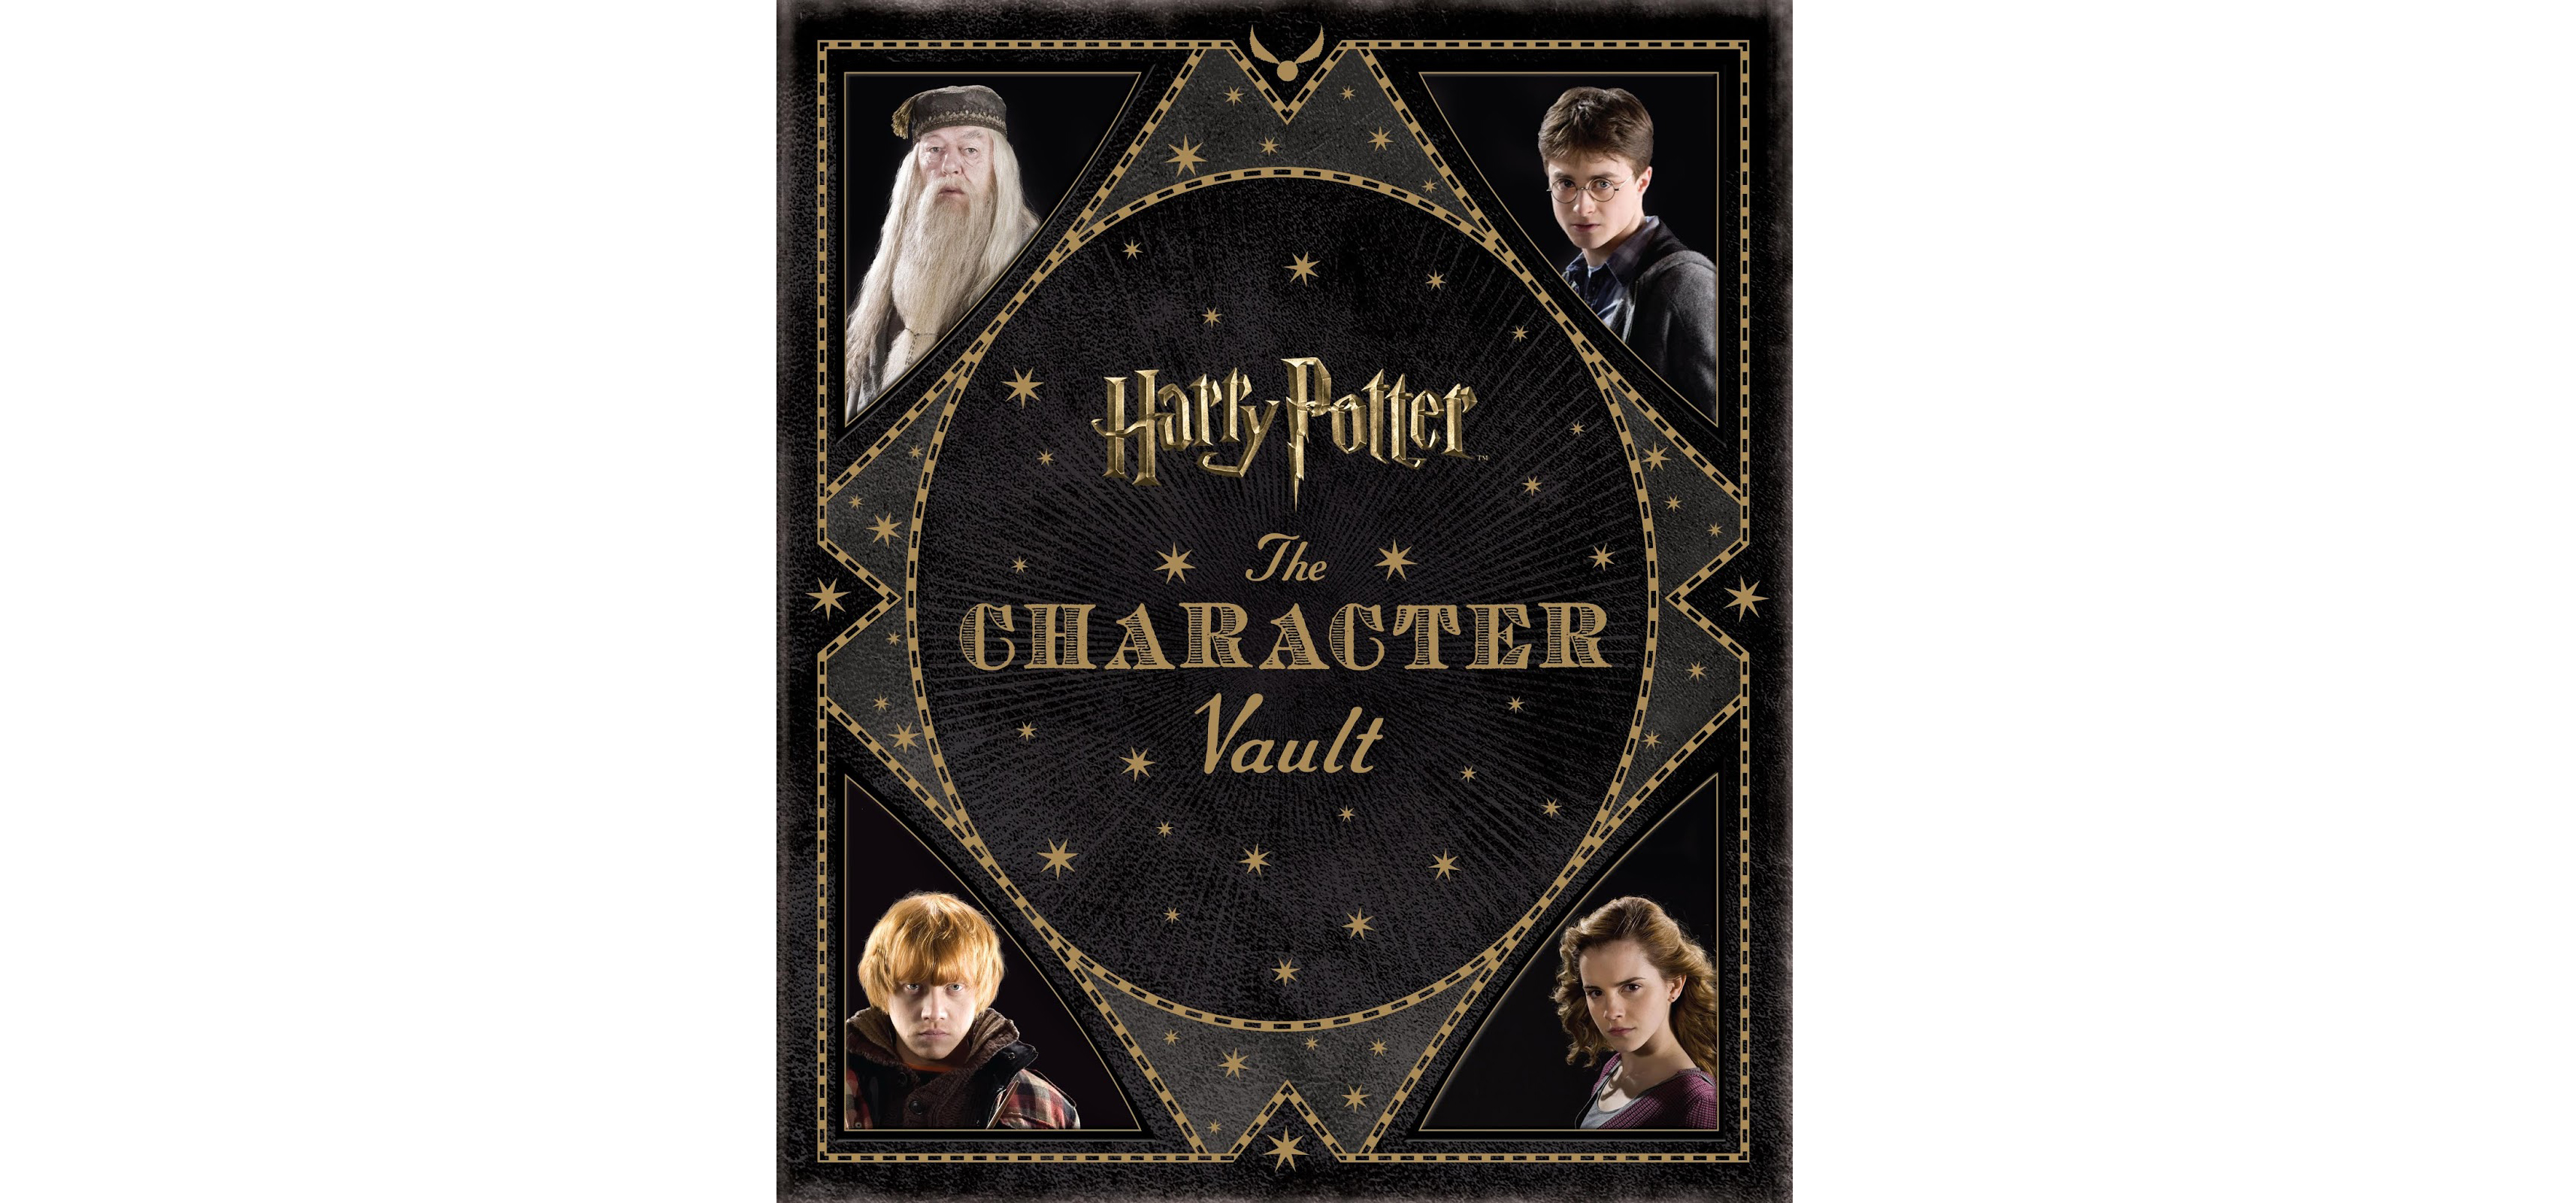 Harry Potter: The Character Vault book cover